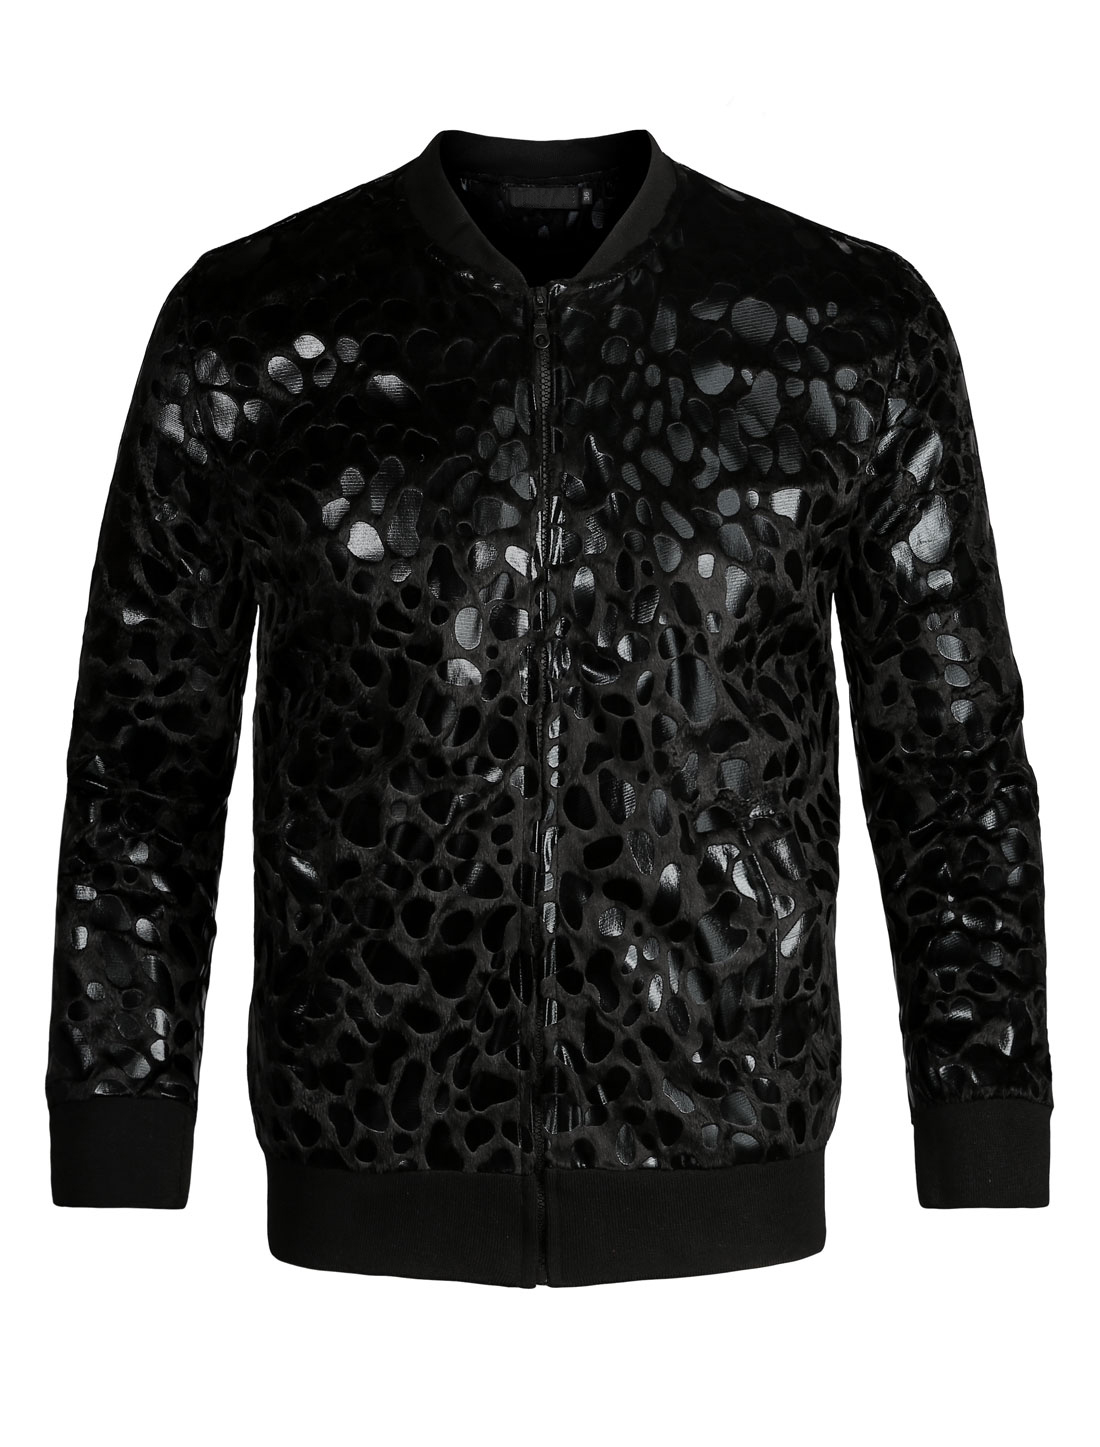 Men Black Stylish Long Sleeve Stand Collar Leopard Prints Casual Jacket S